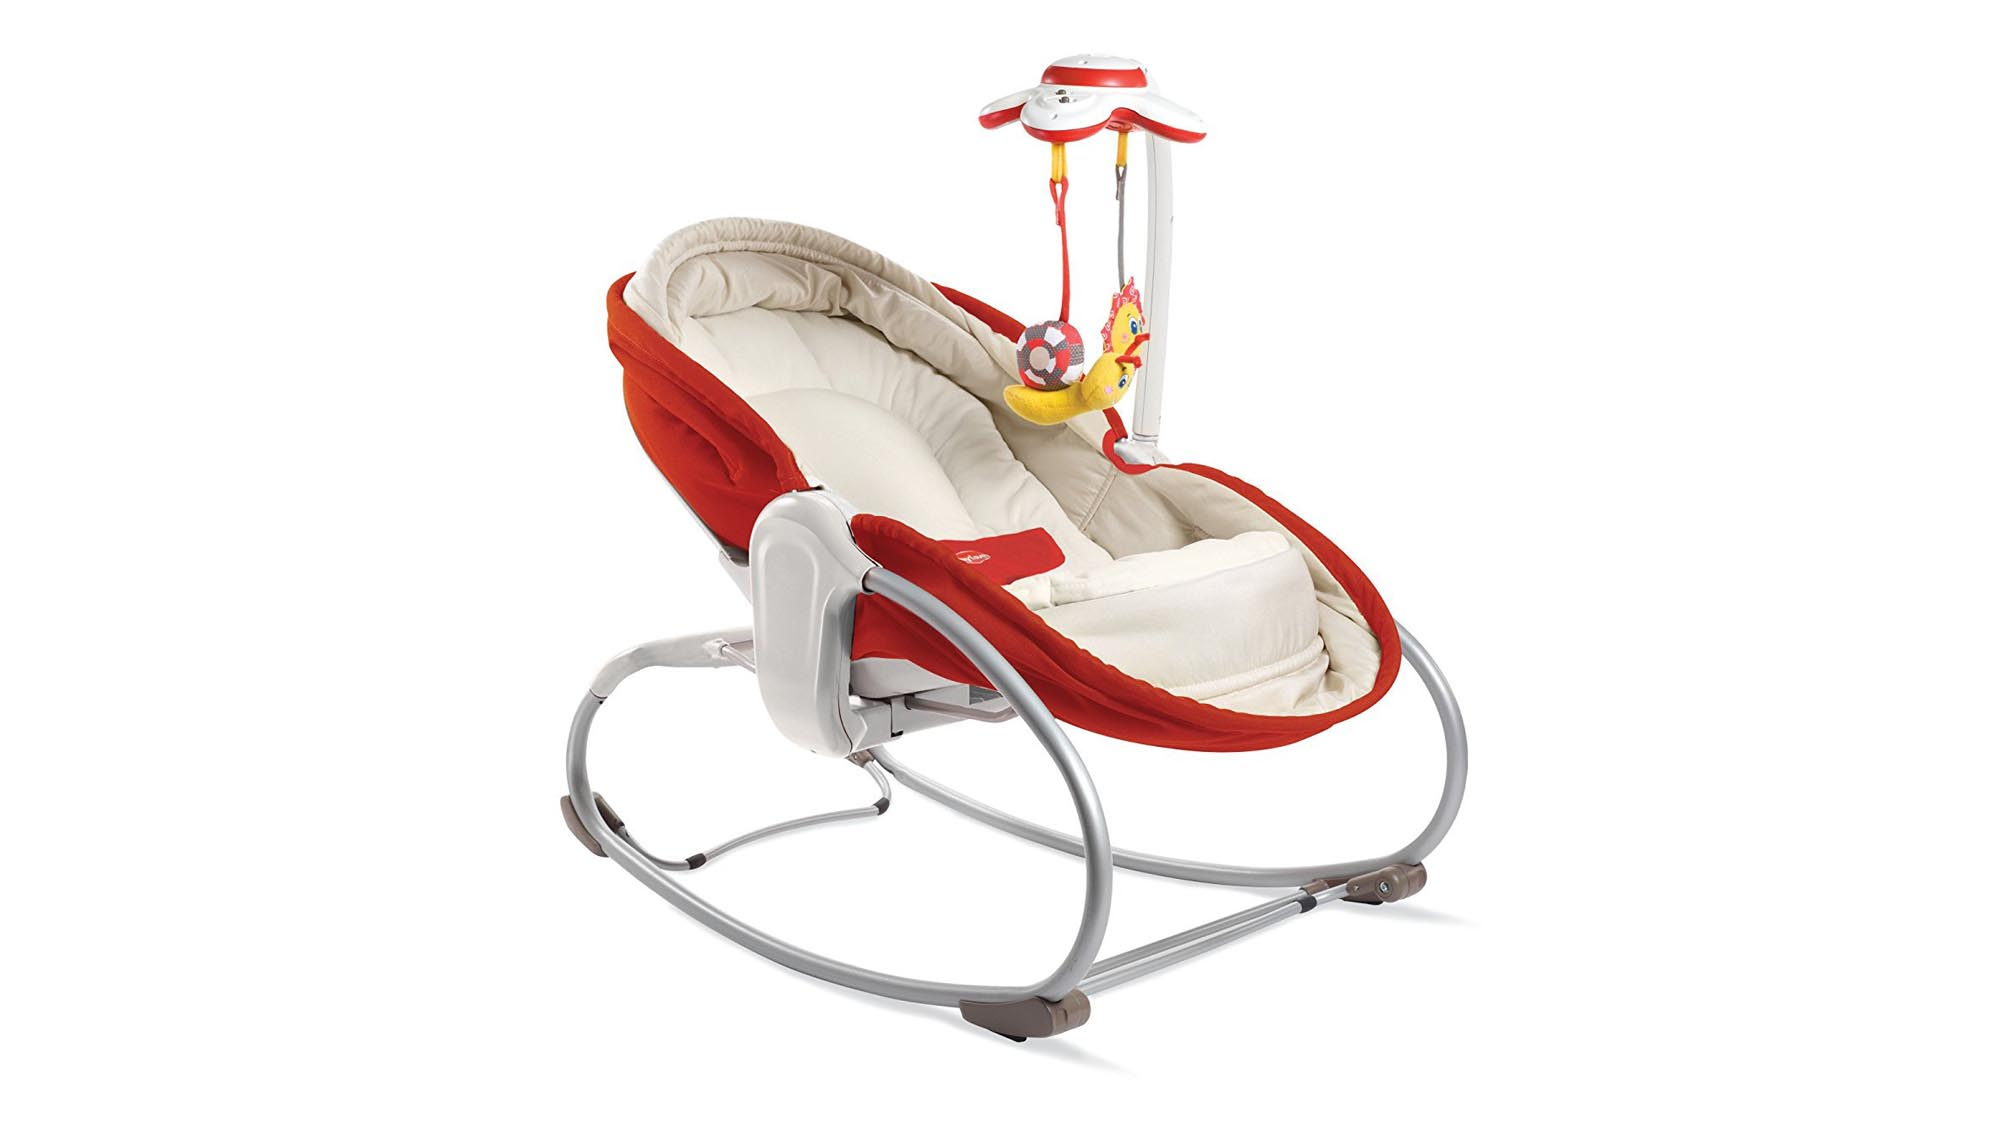 Best baby bouncer 5 of the best baby bouncers from £40